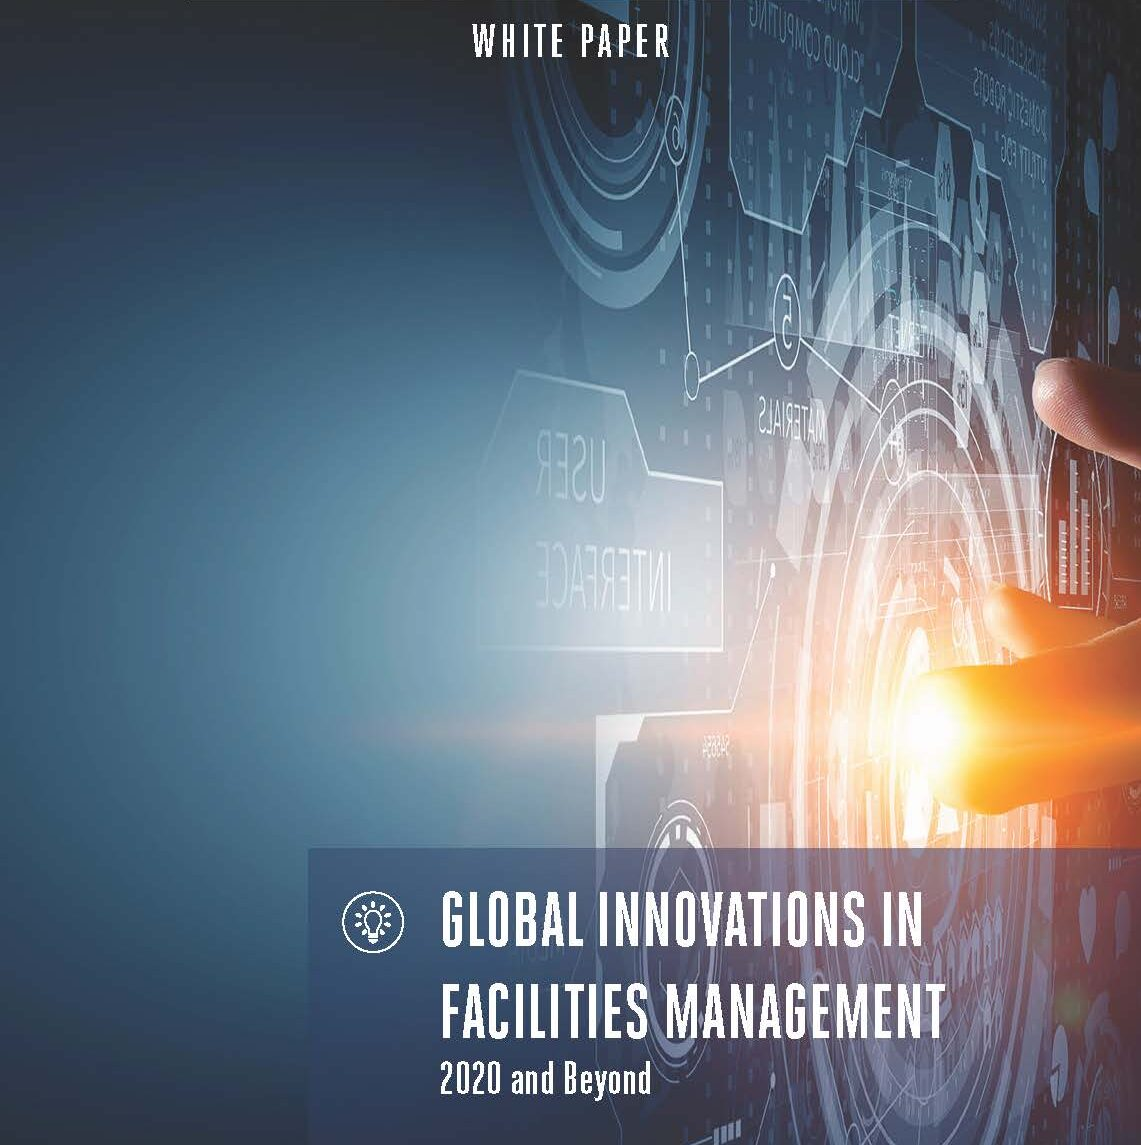 Global innovations in Facilities Management 2020 and beyond